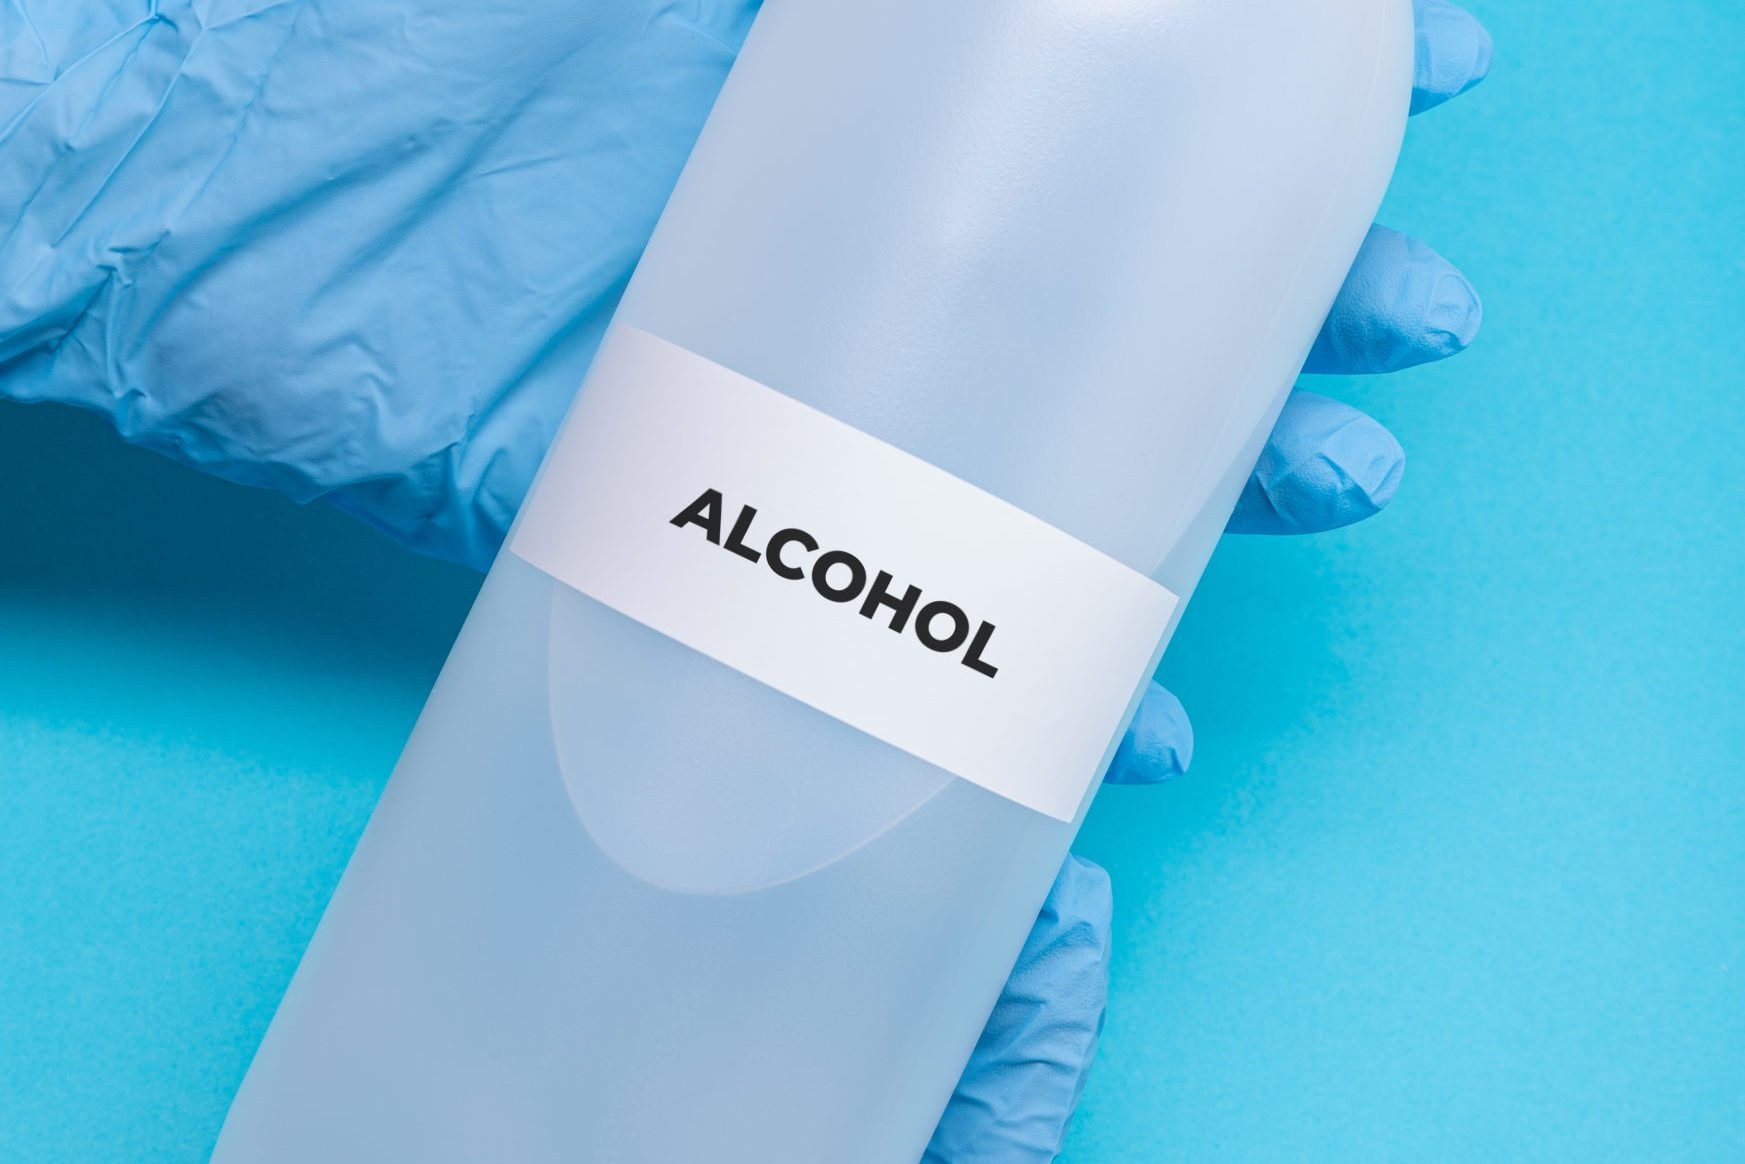 rubbing alcohol bottle on blue background